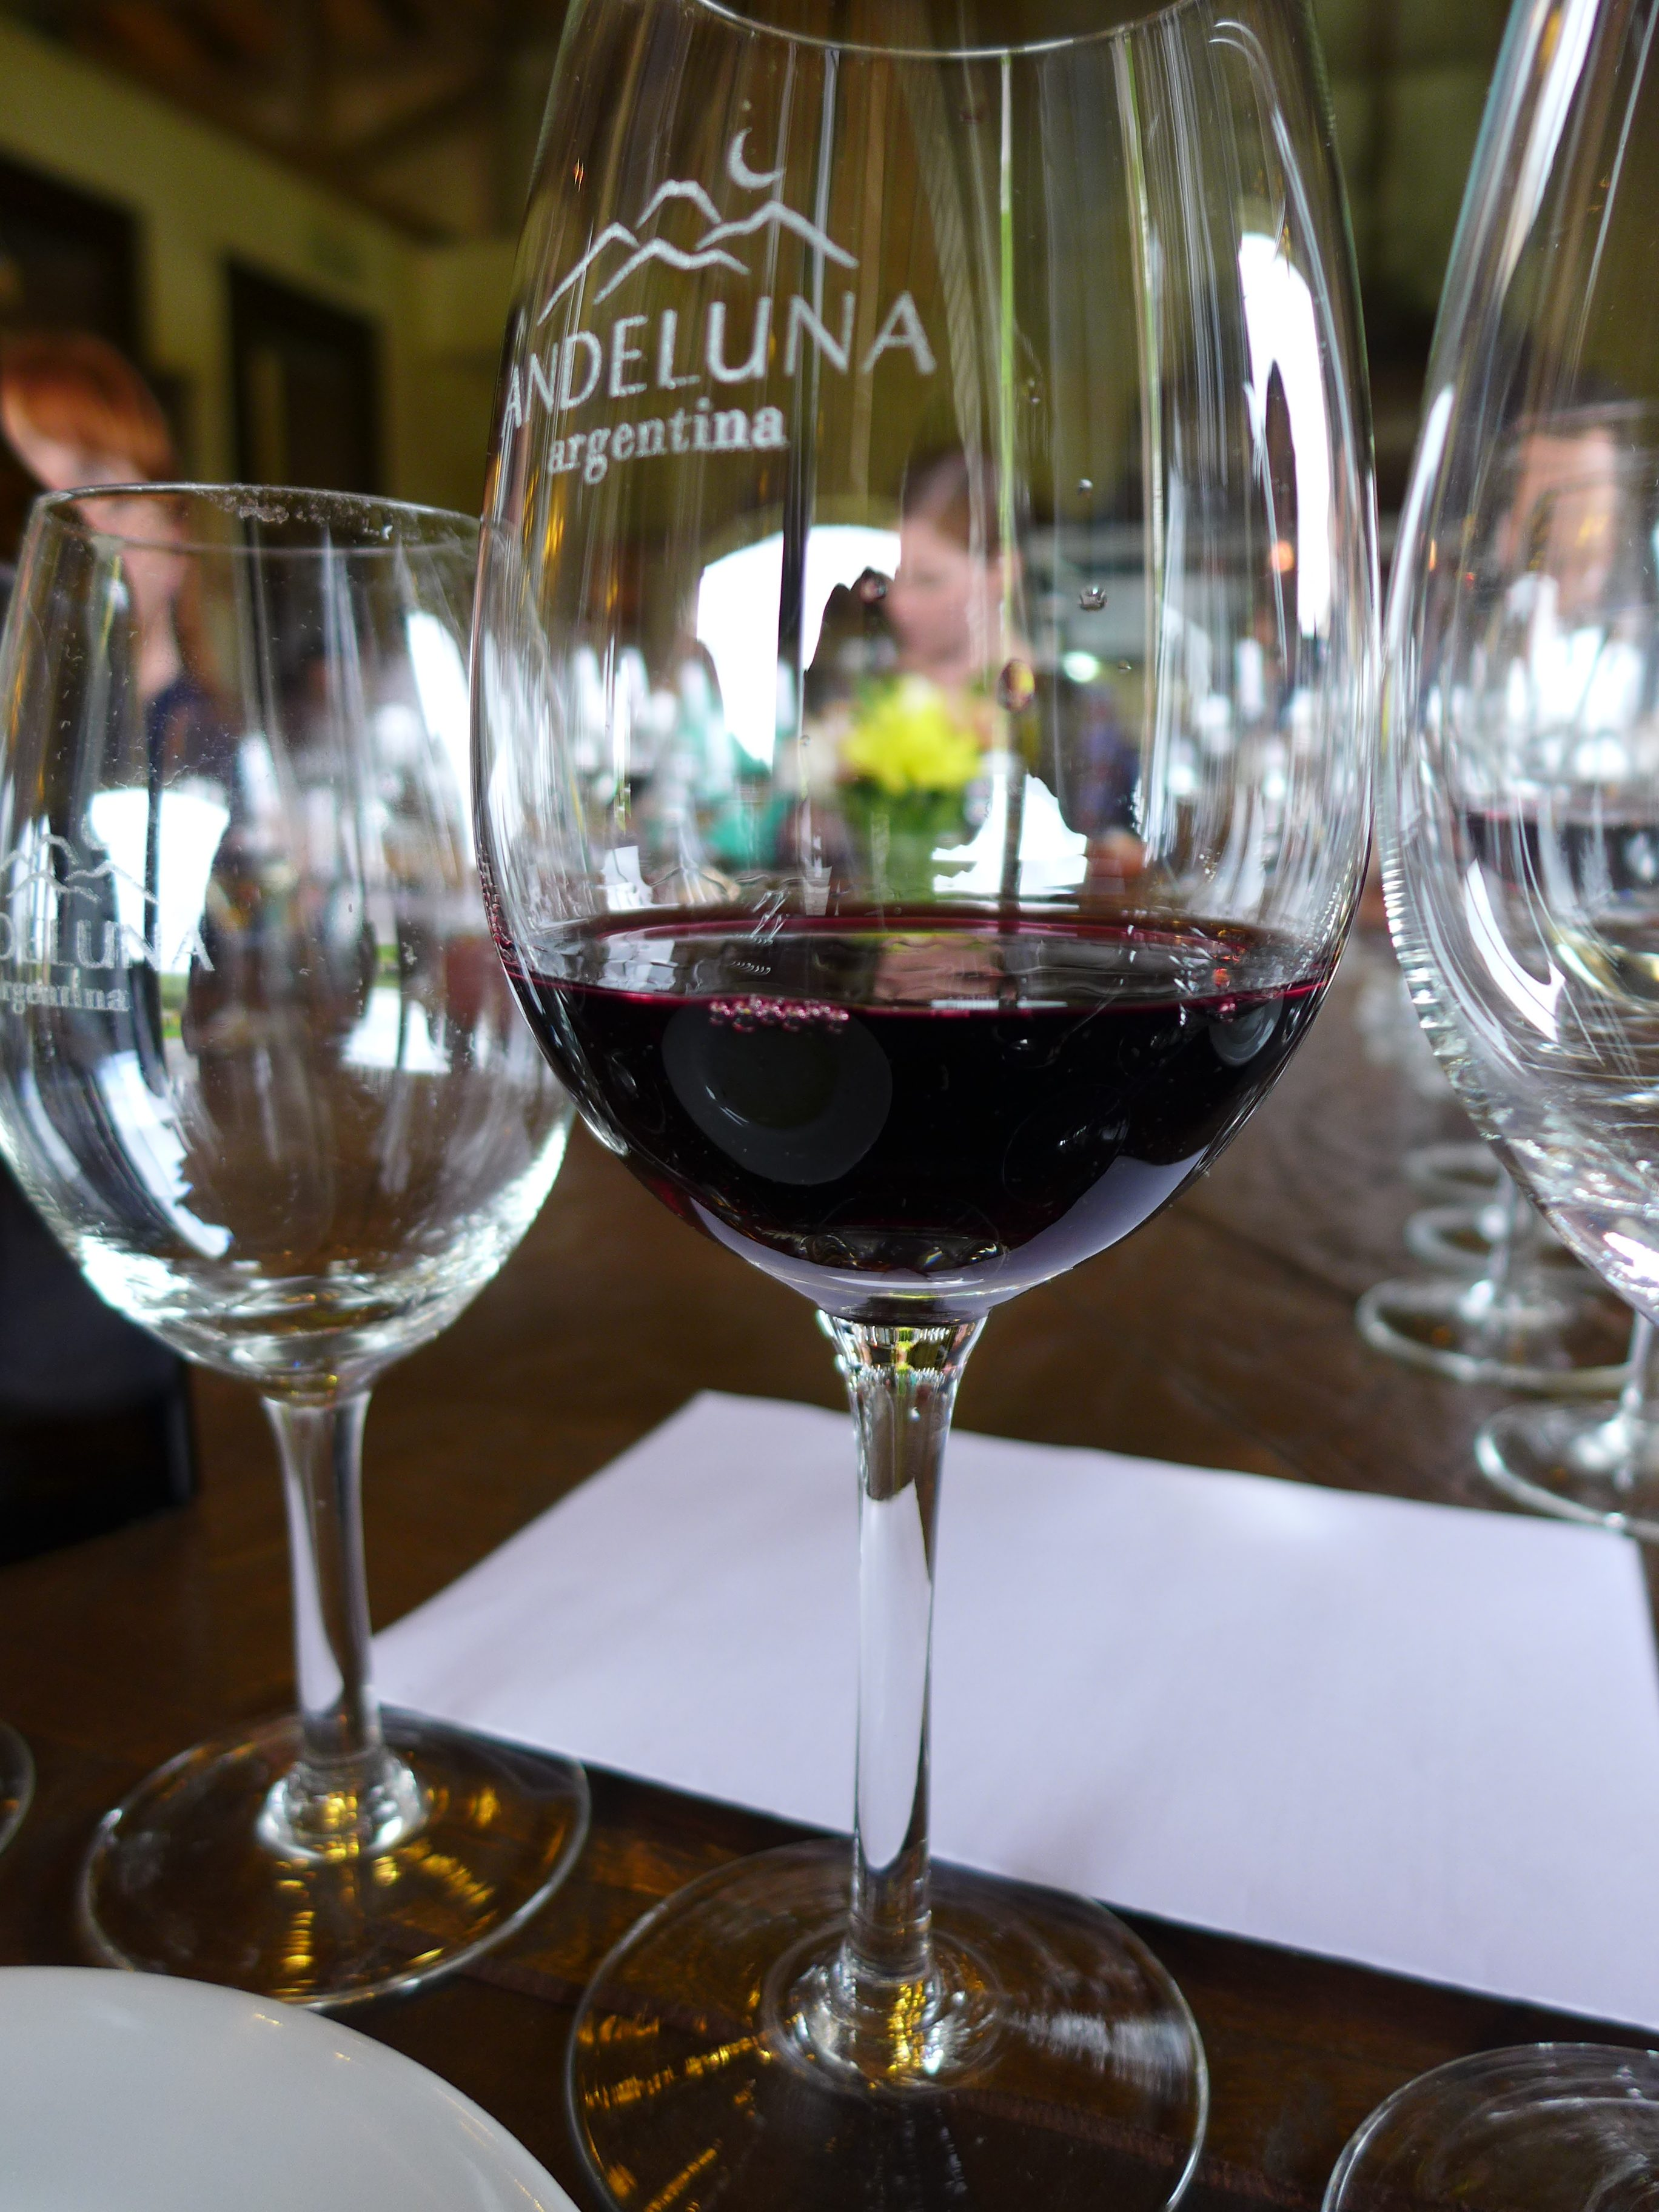 Visiting Andeluna during our Mendoza winery tours